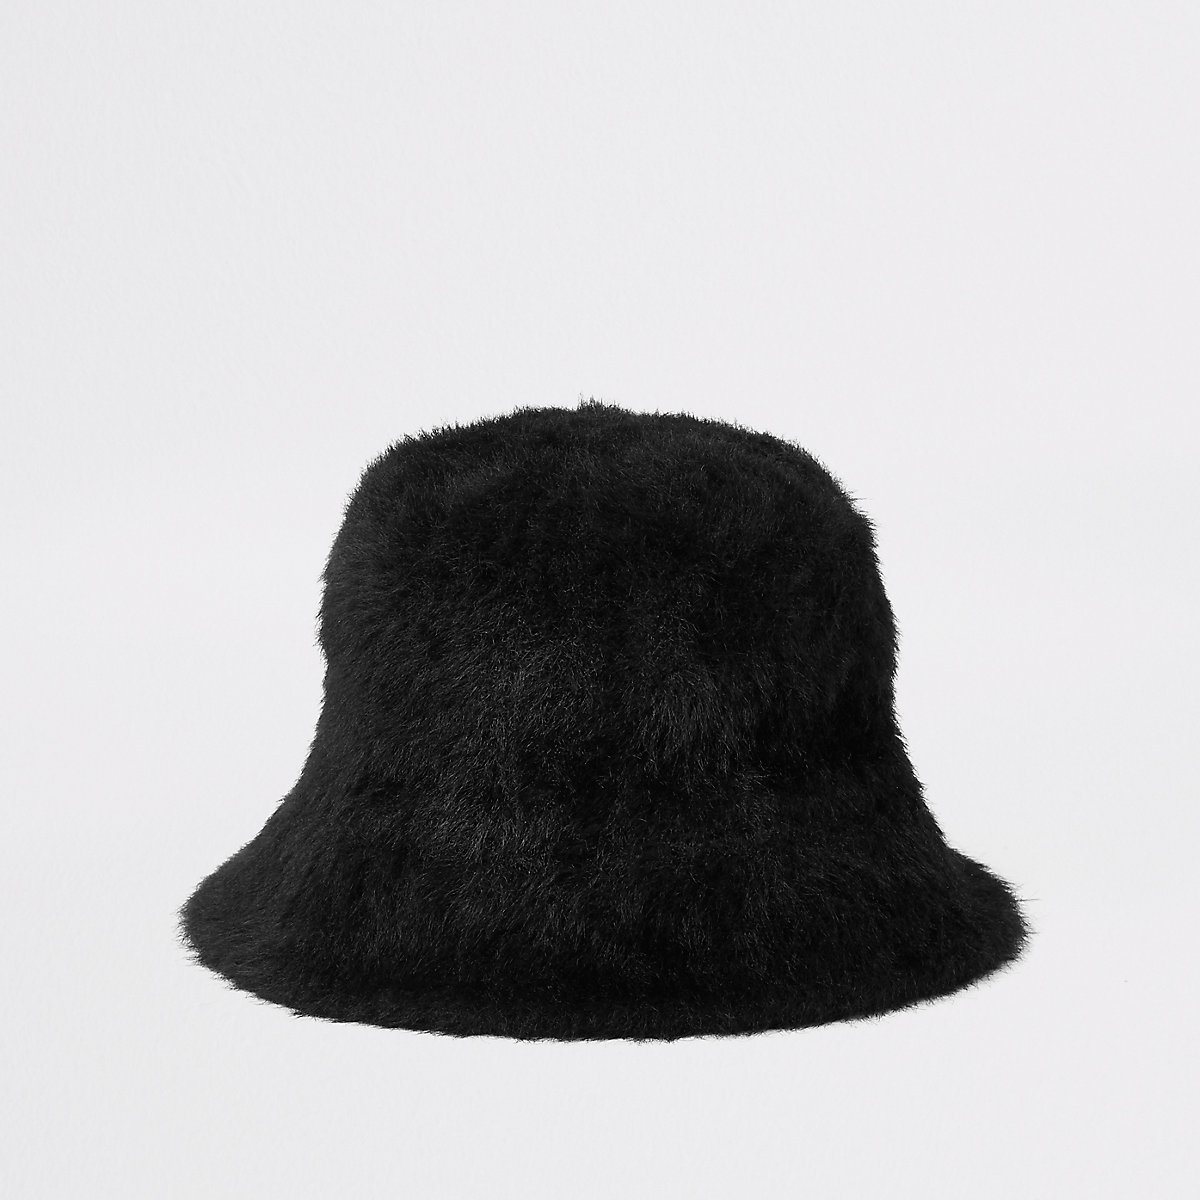 bab64d260a2 Black fluffy bucket hat - Hats - Accessories - women